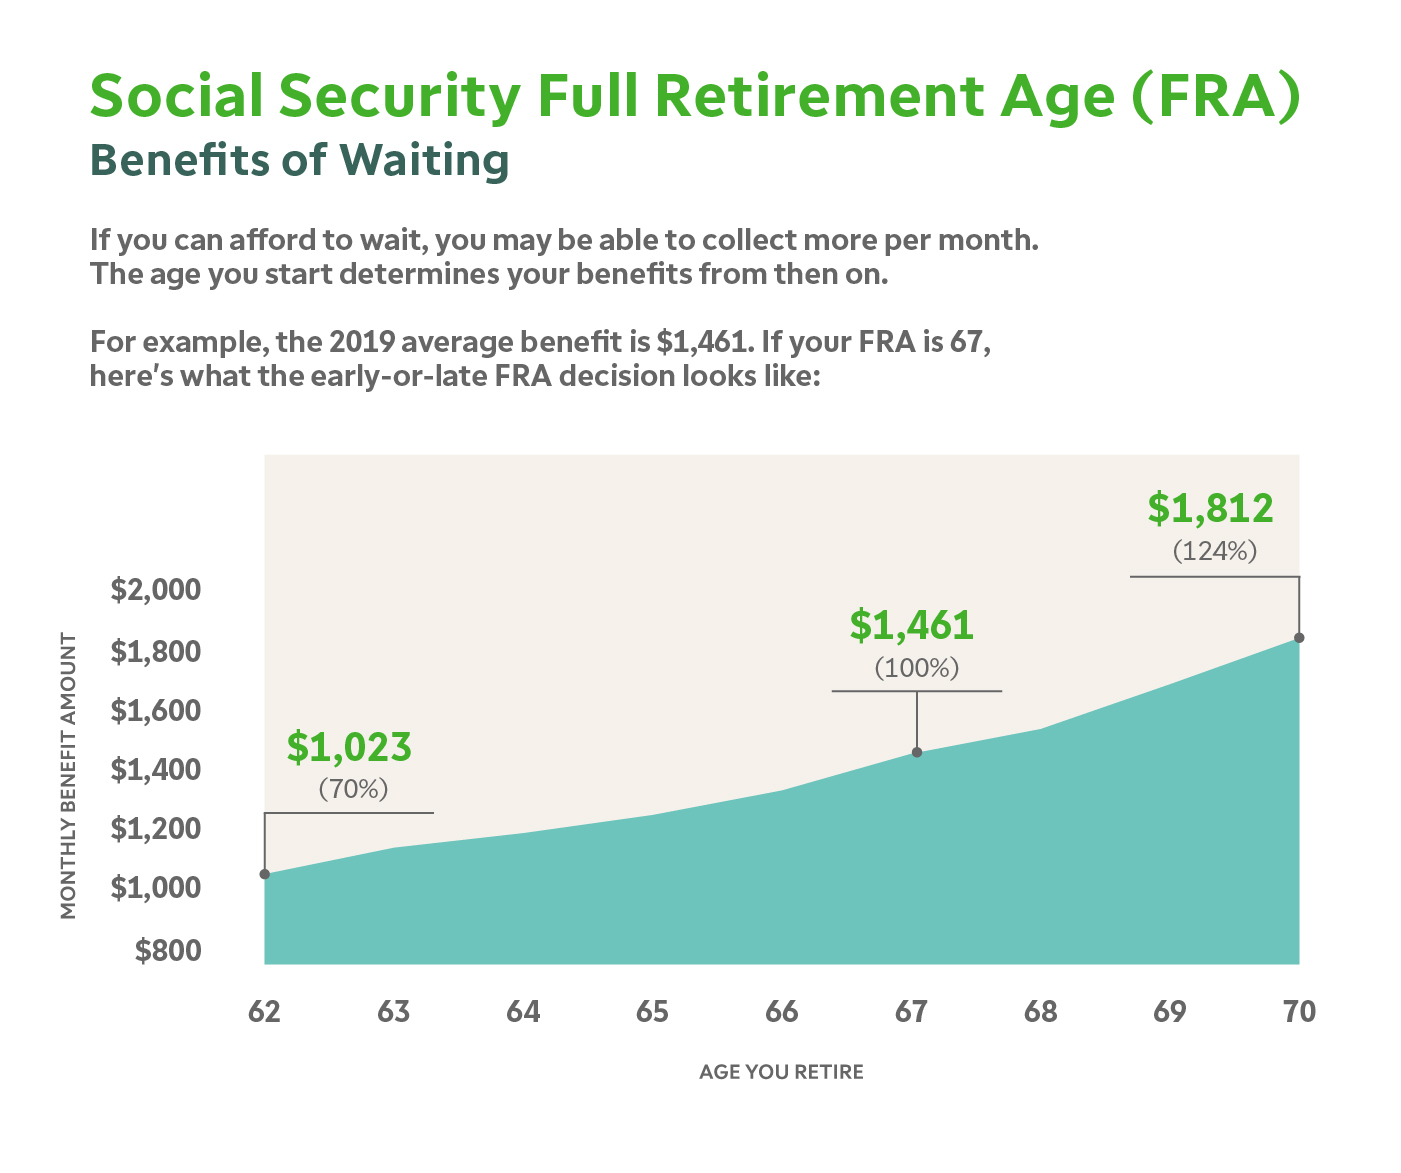 Social Security benefits and full retirement age